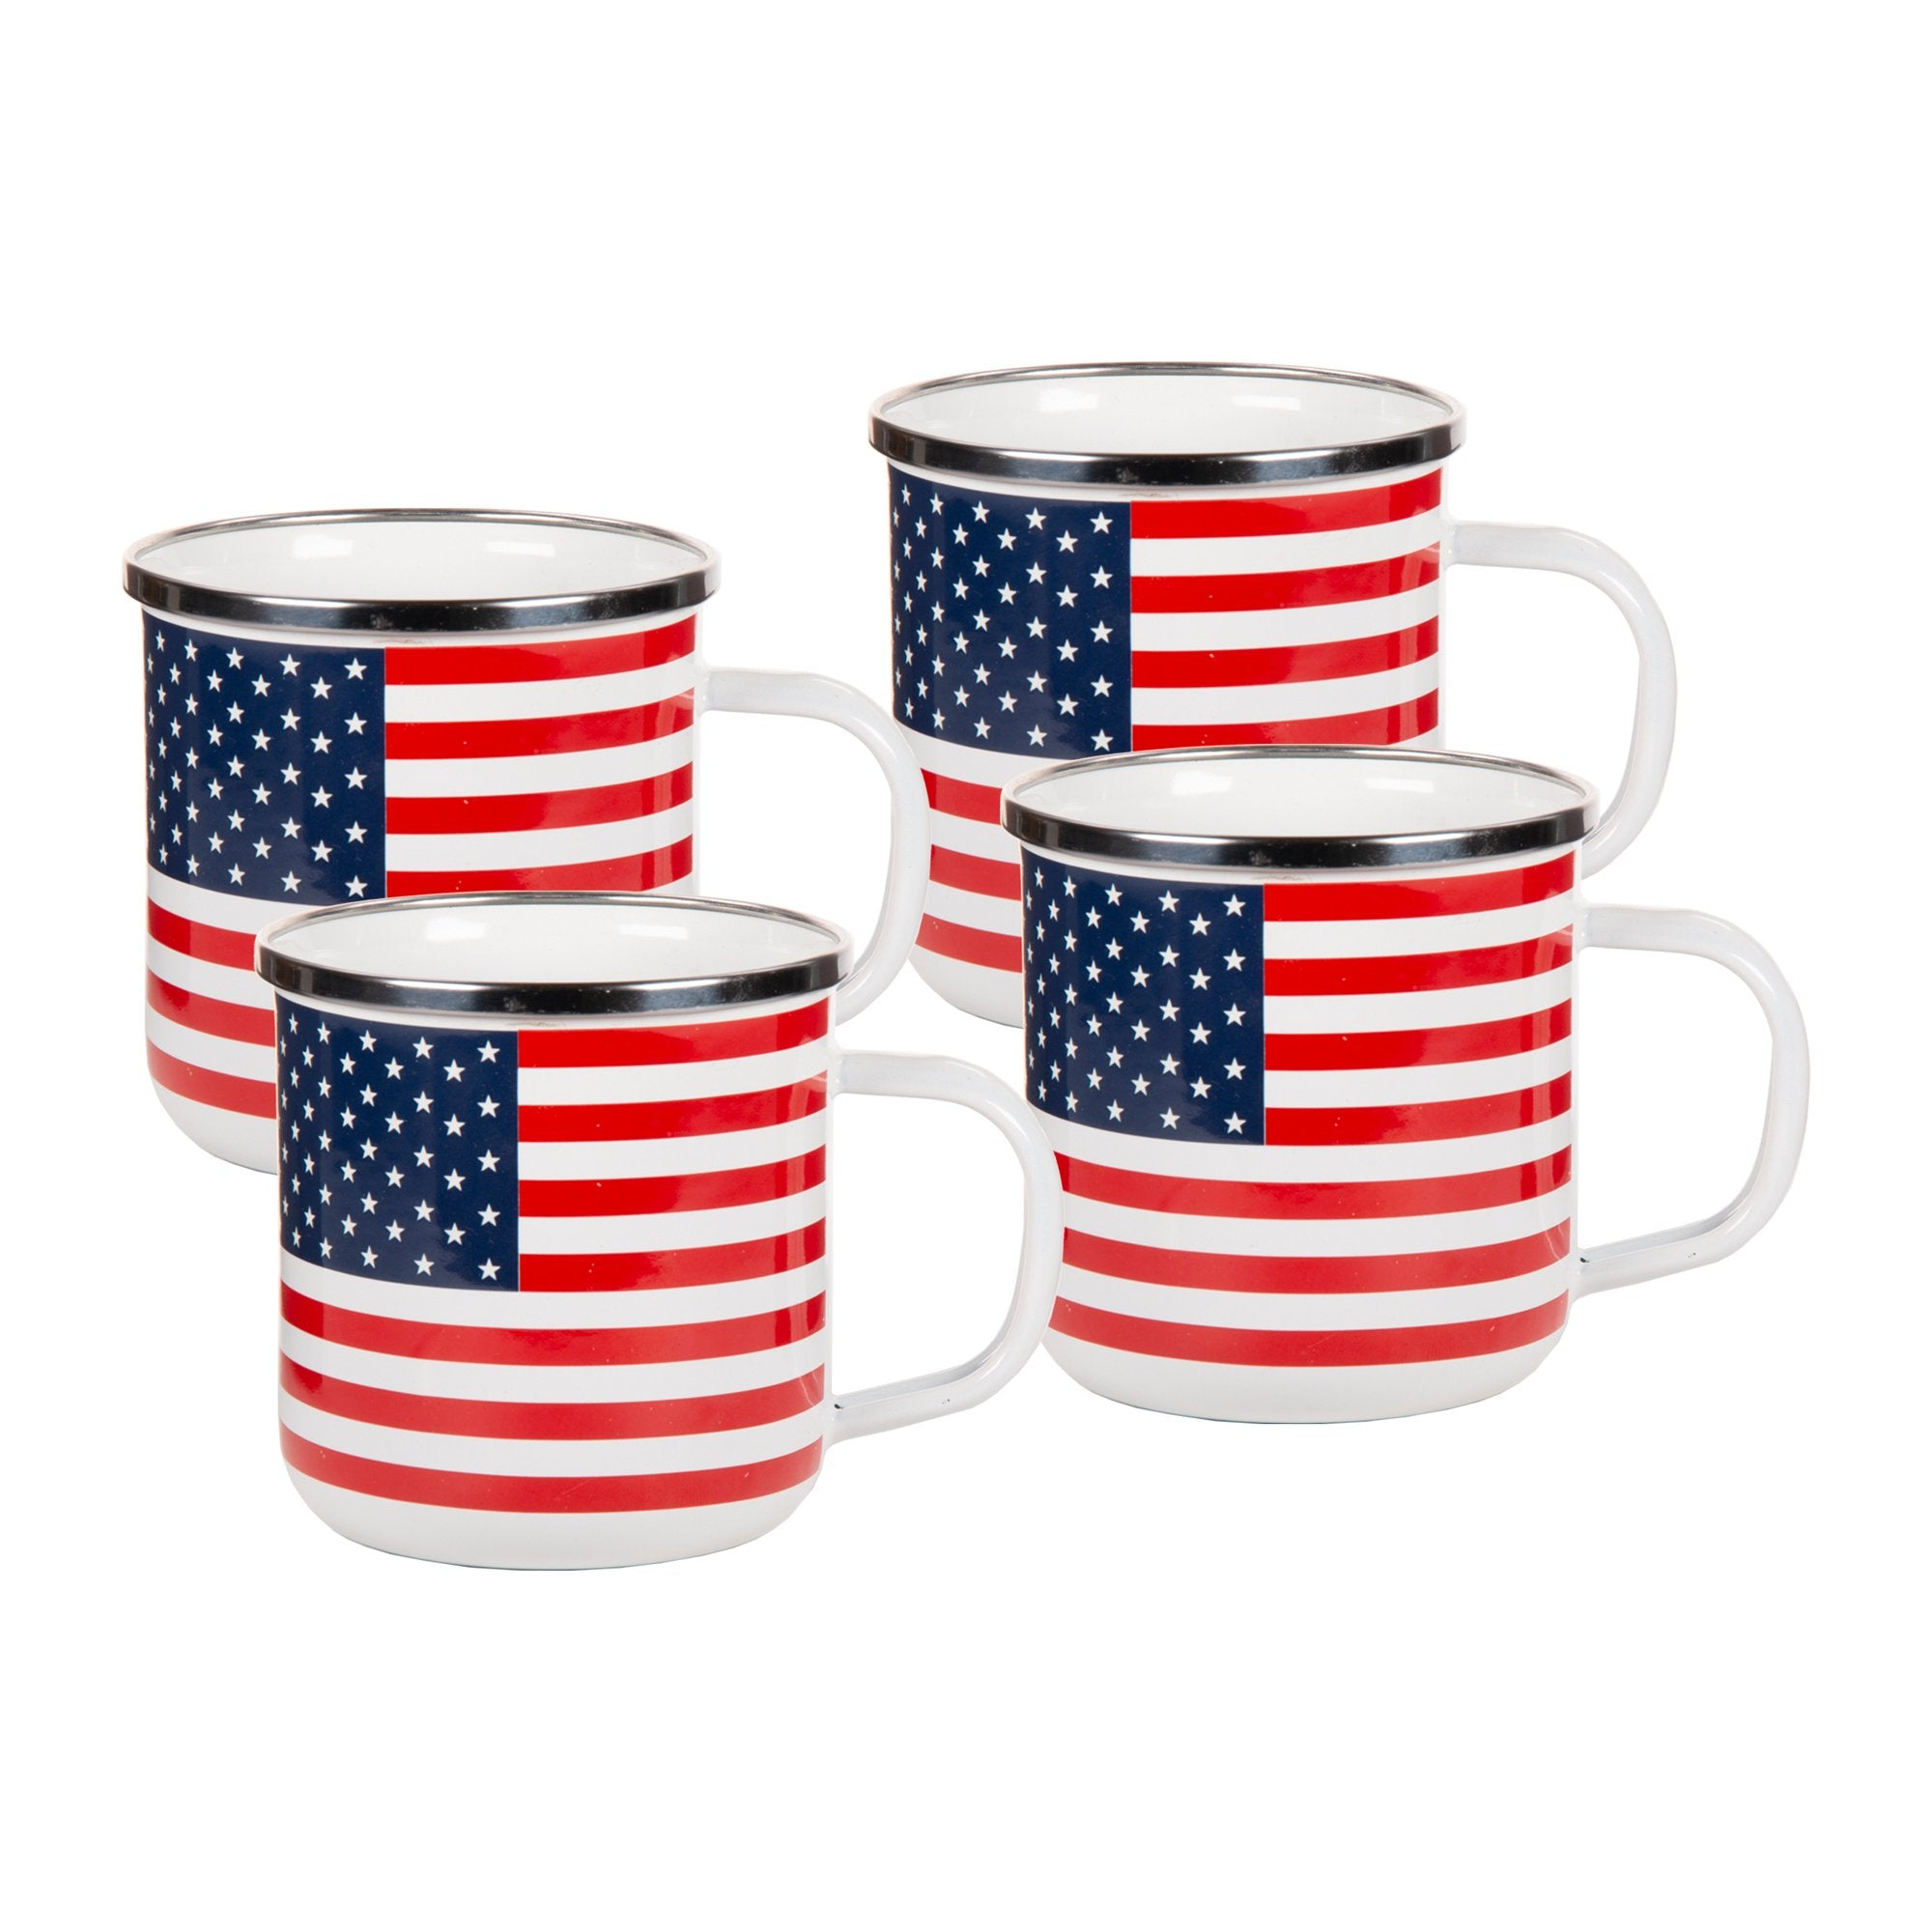 SS05S4 - Set of 4 - Stars and Stripes Enamelware - Coffee Mugs